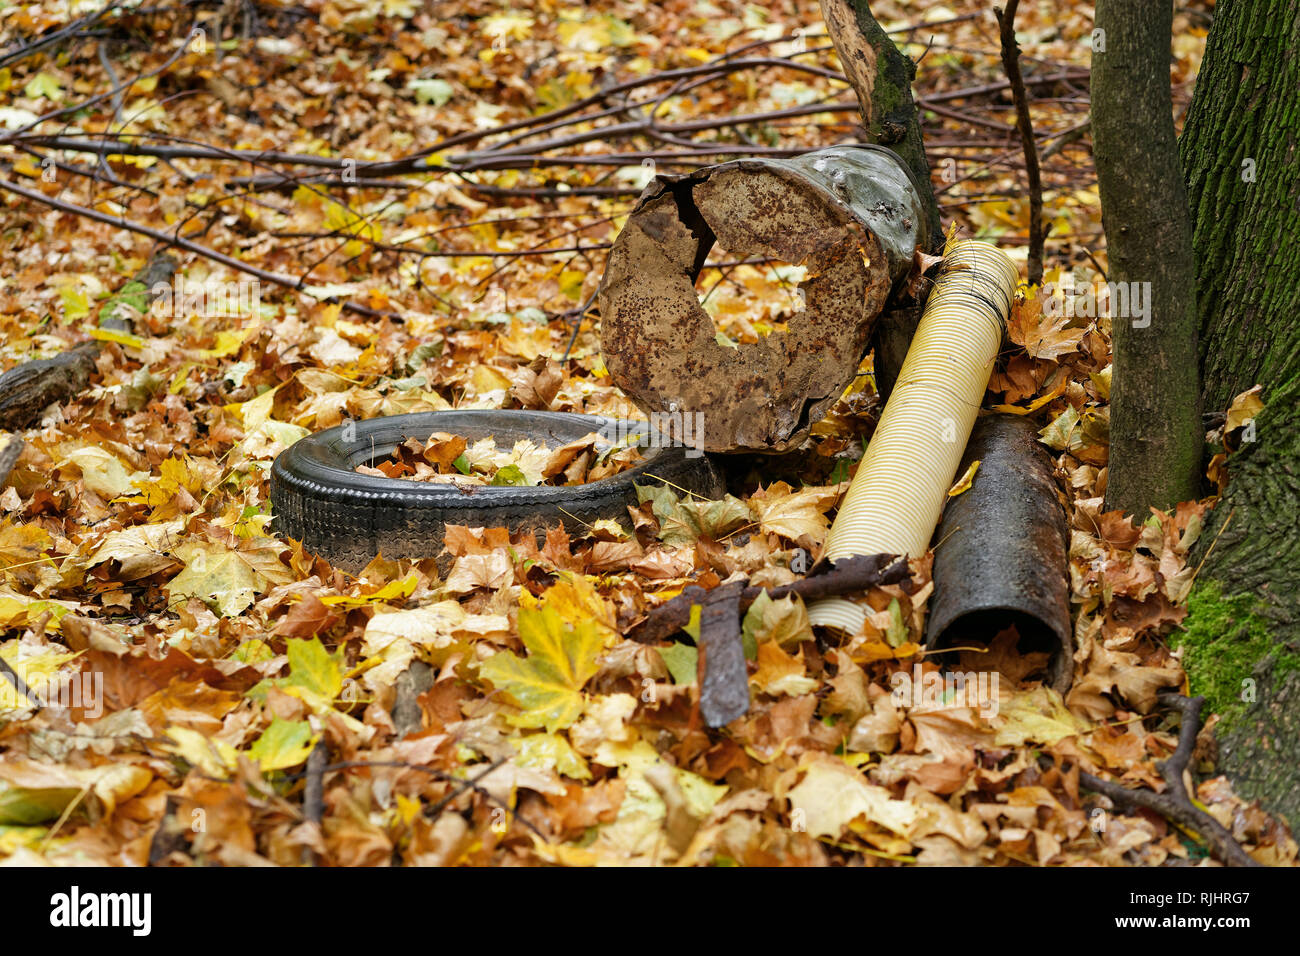 Garbage deposit in the forest on a tree, car tires, metal scrap, components, autumn leaves cover the ground - Location: Germany - Stock Image